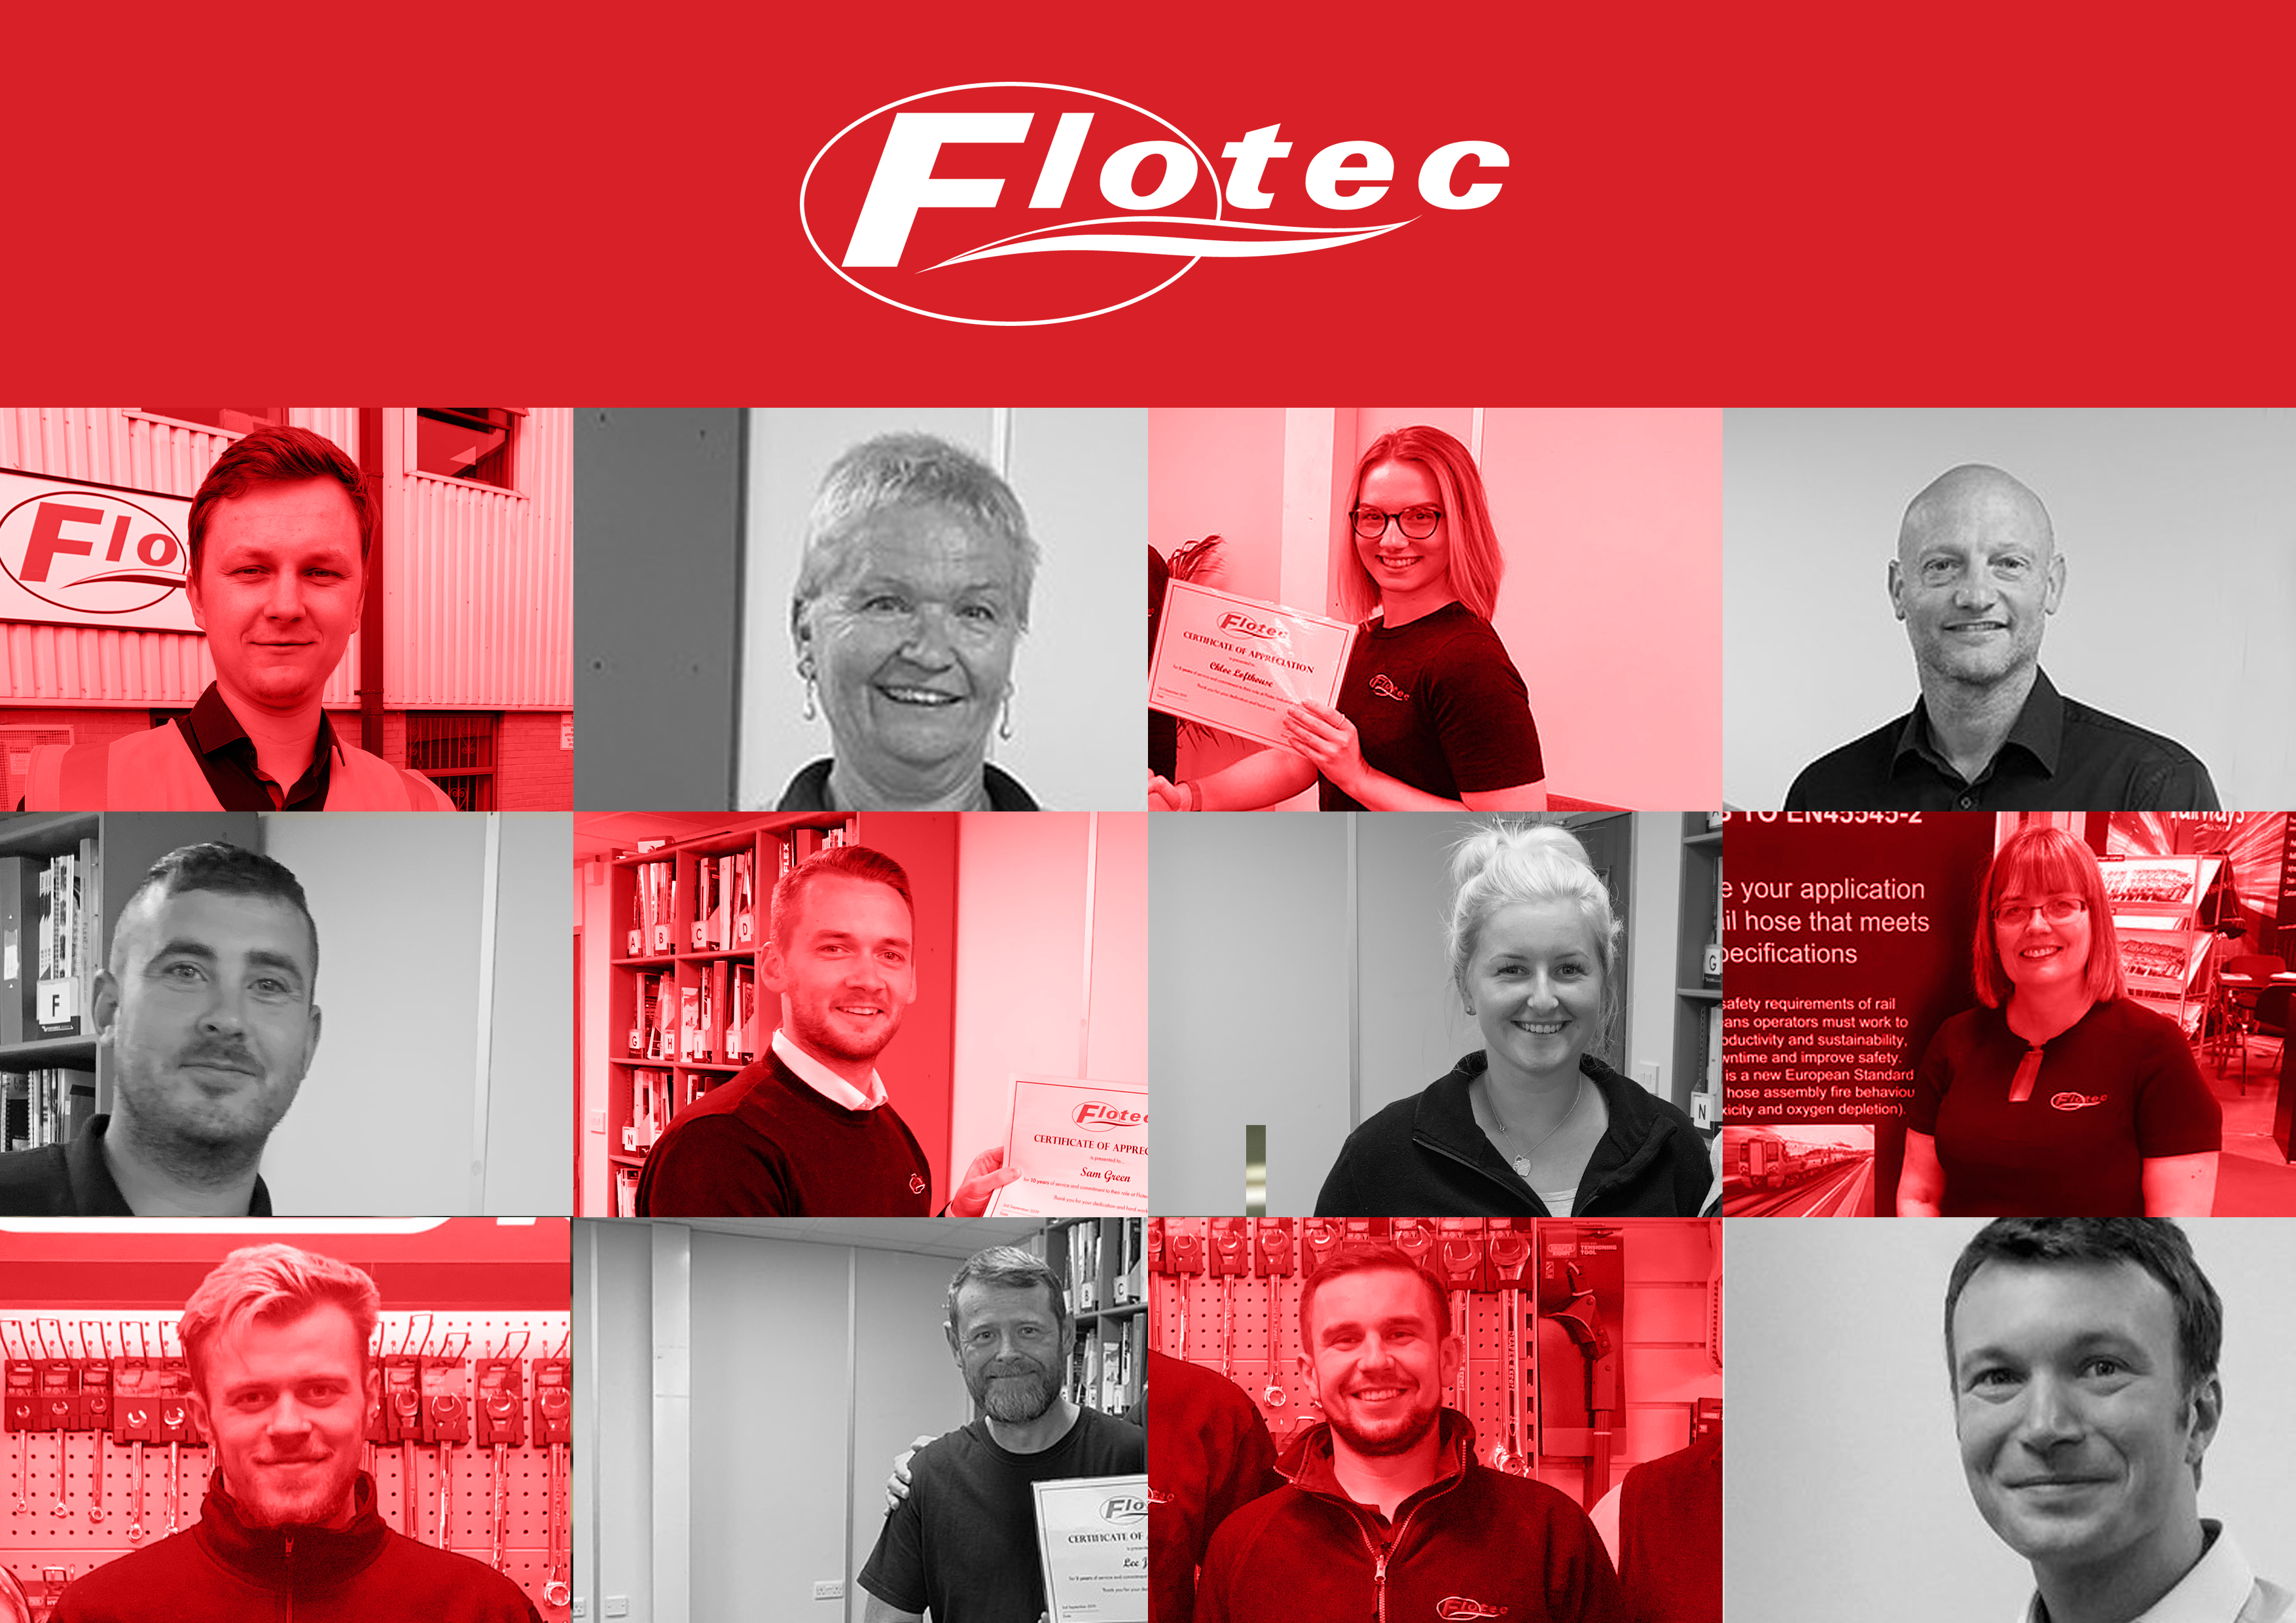 FLOTEC HANDS OWNERSHIP TO ITS STAFF